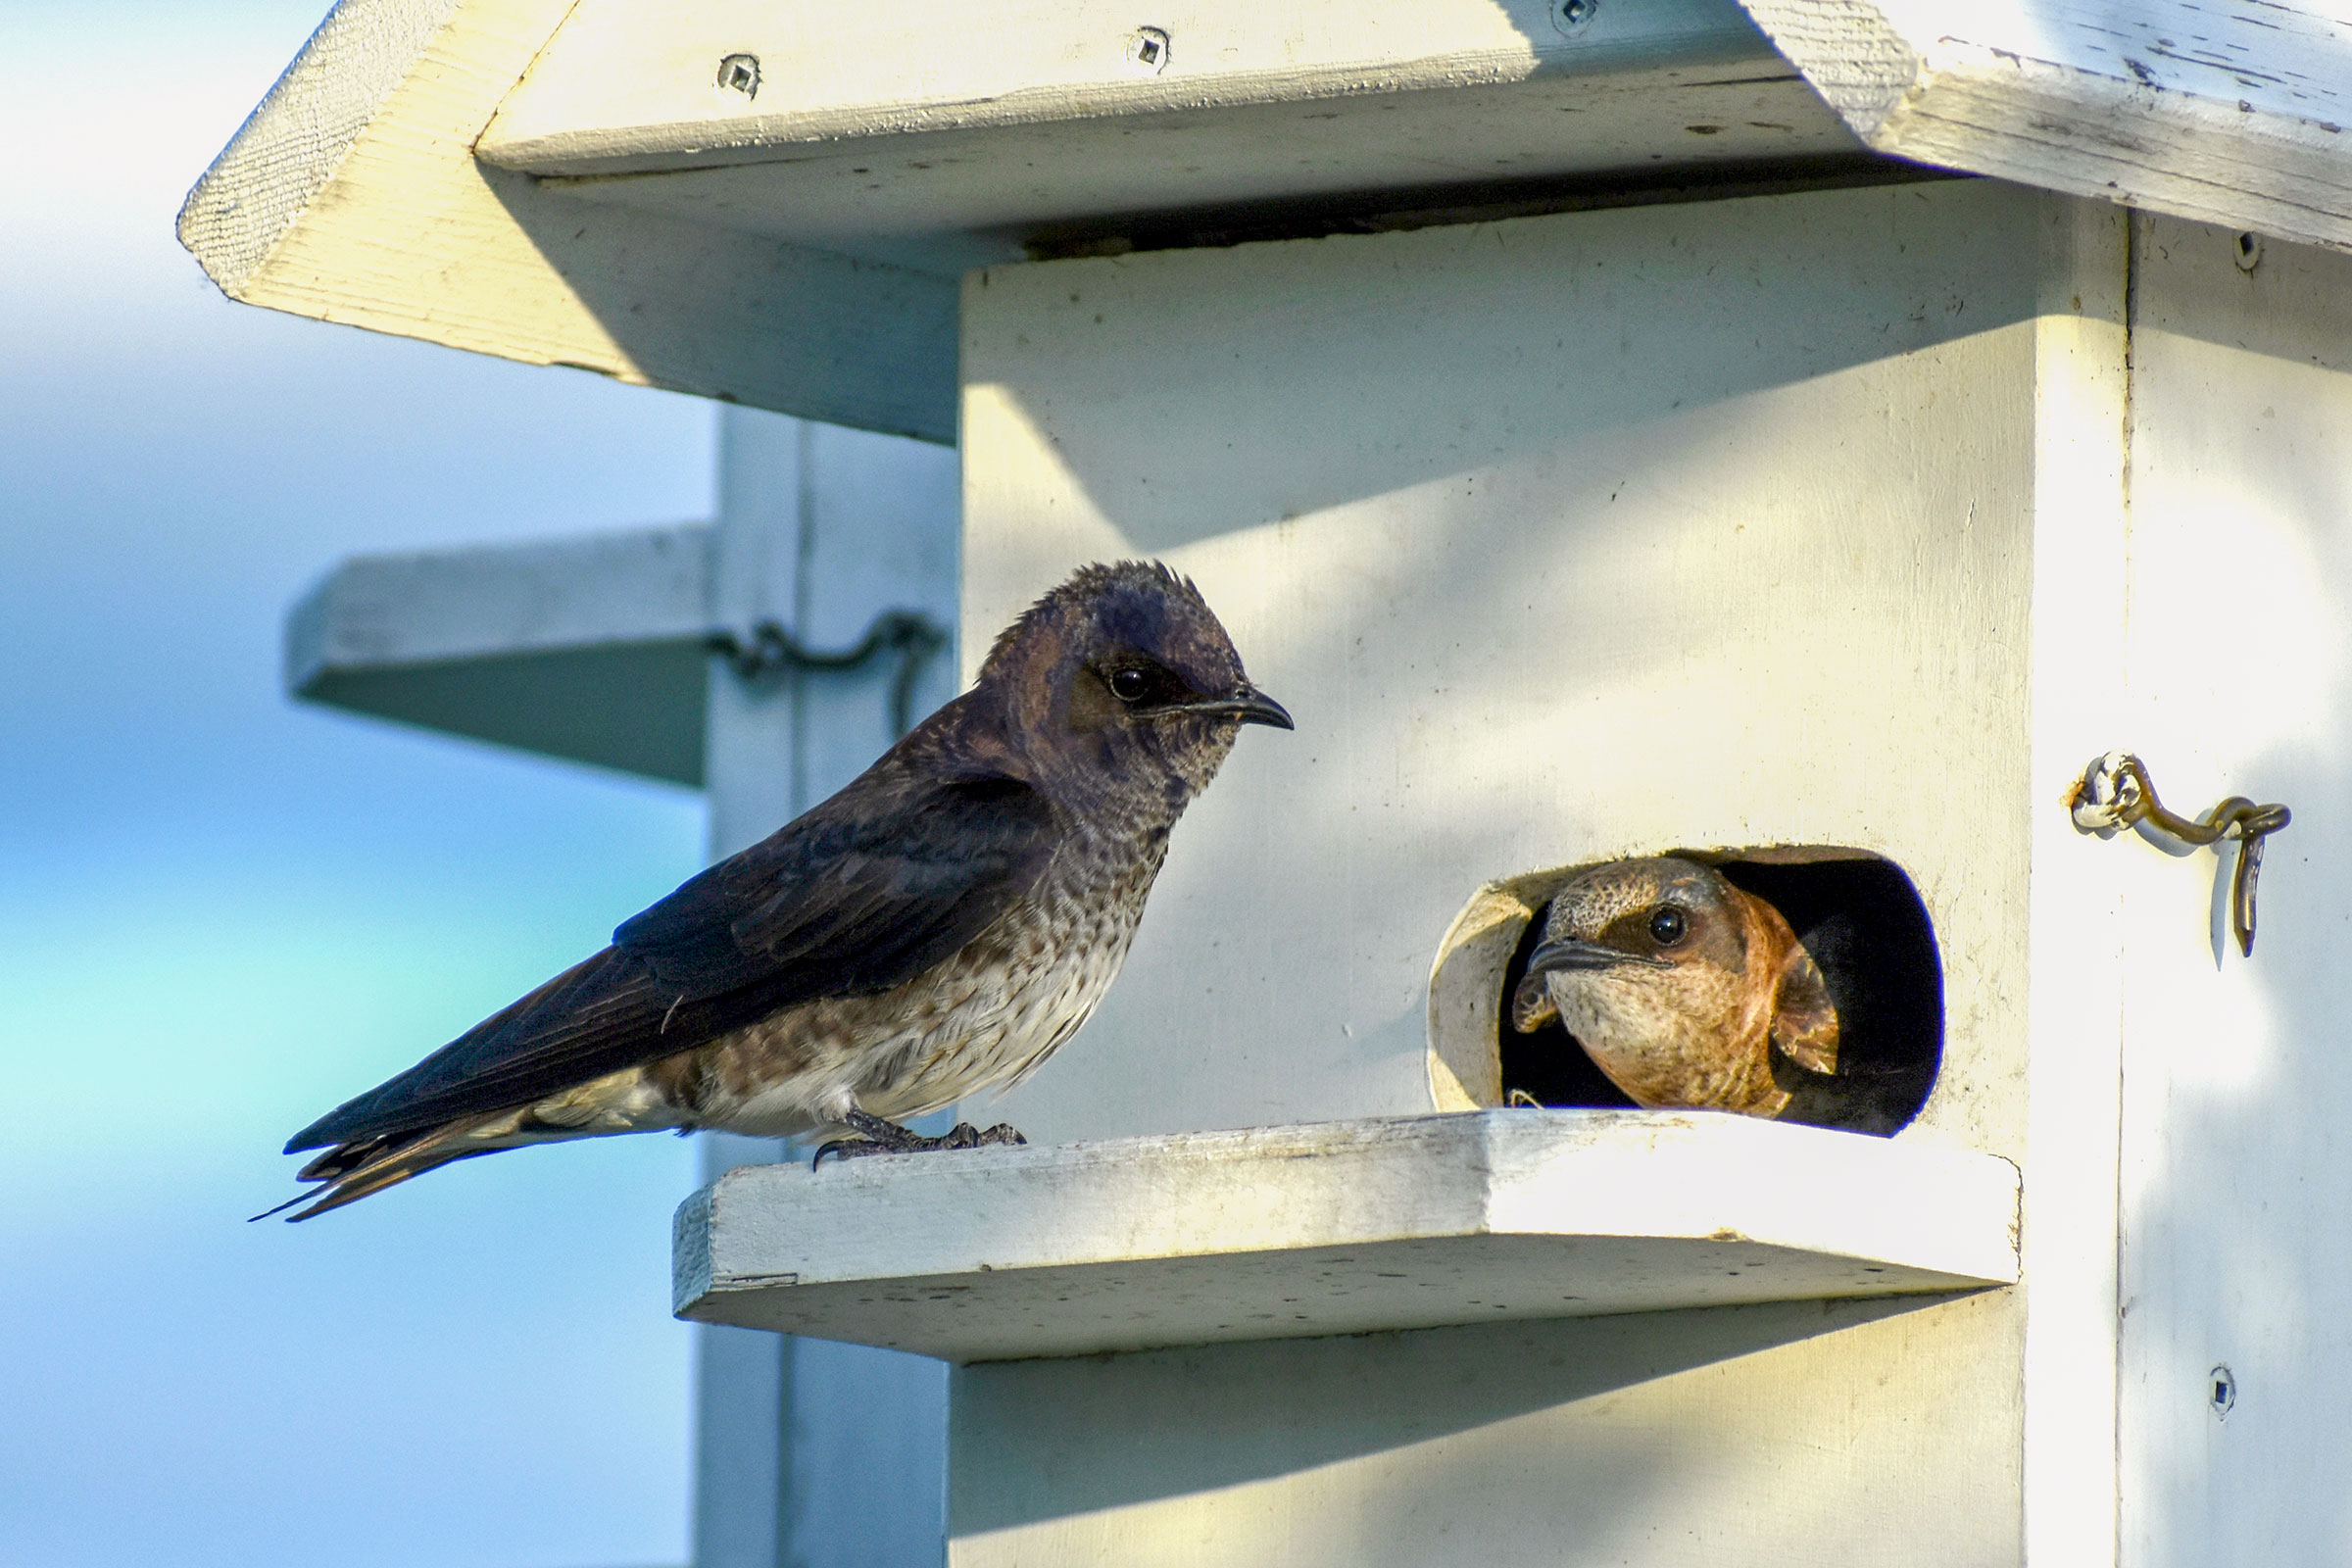 Purple Martins are common users of nest boxes. Here, a male bird, with a purple wash, sits on the ledge of a white birdhouse; a female peeks her head out of the small, round entrance. Reyd Smith